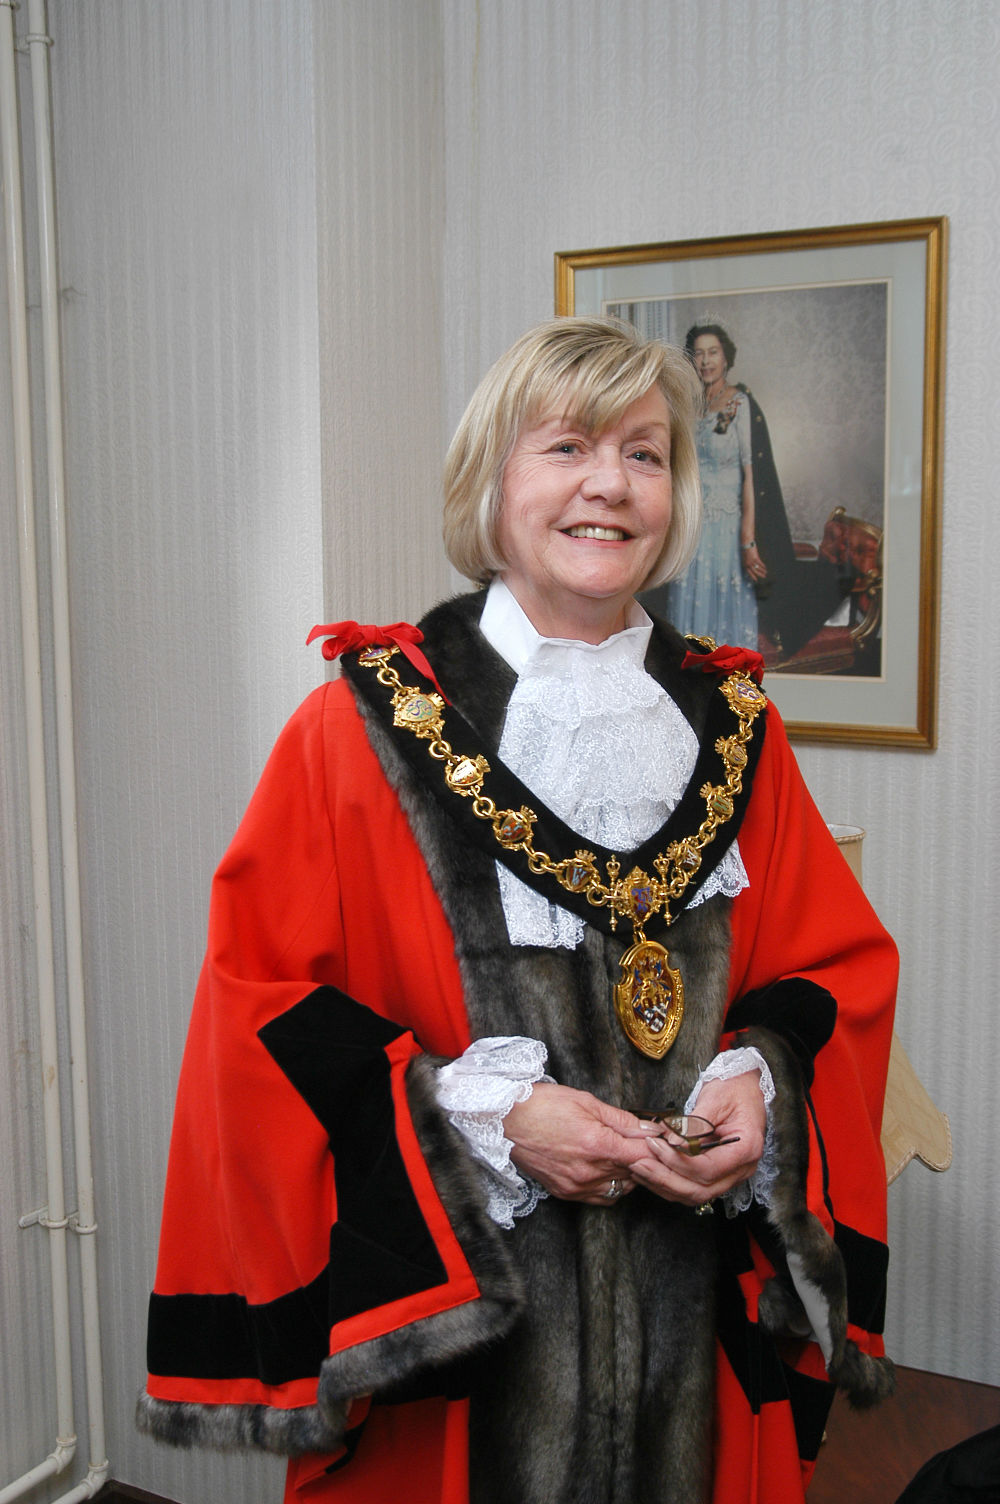 Mayor of Erewash, Councillor Sue Beardsley